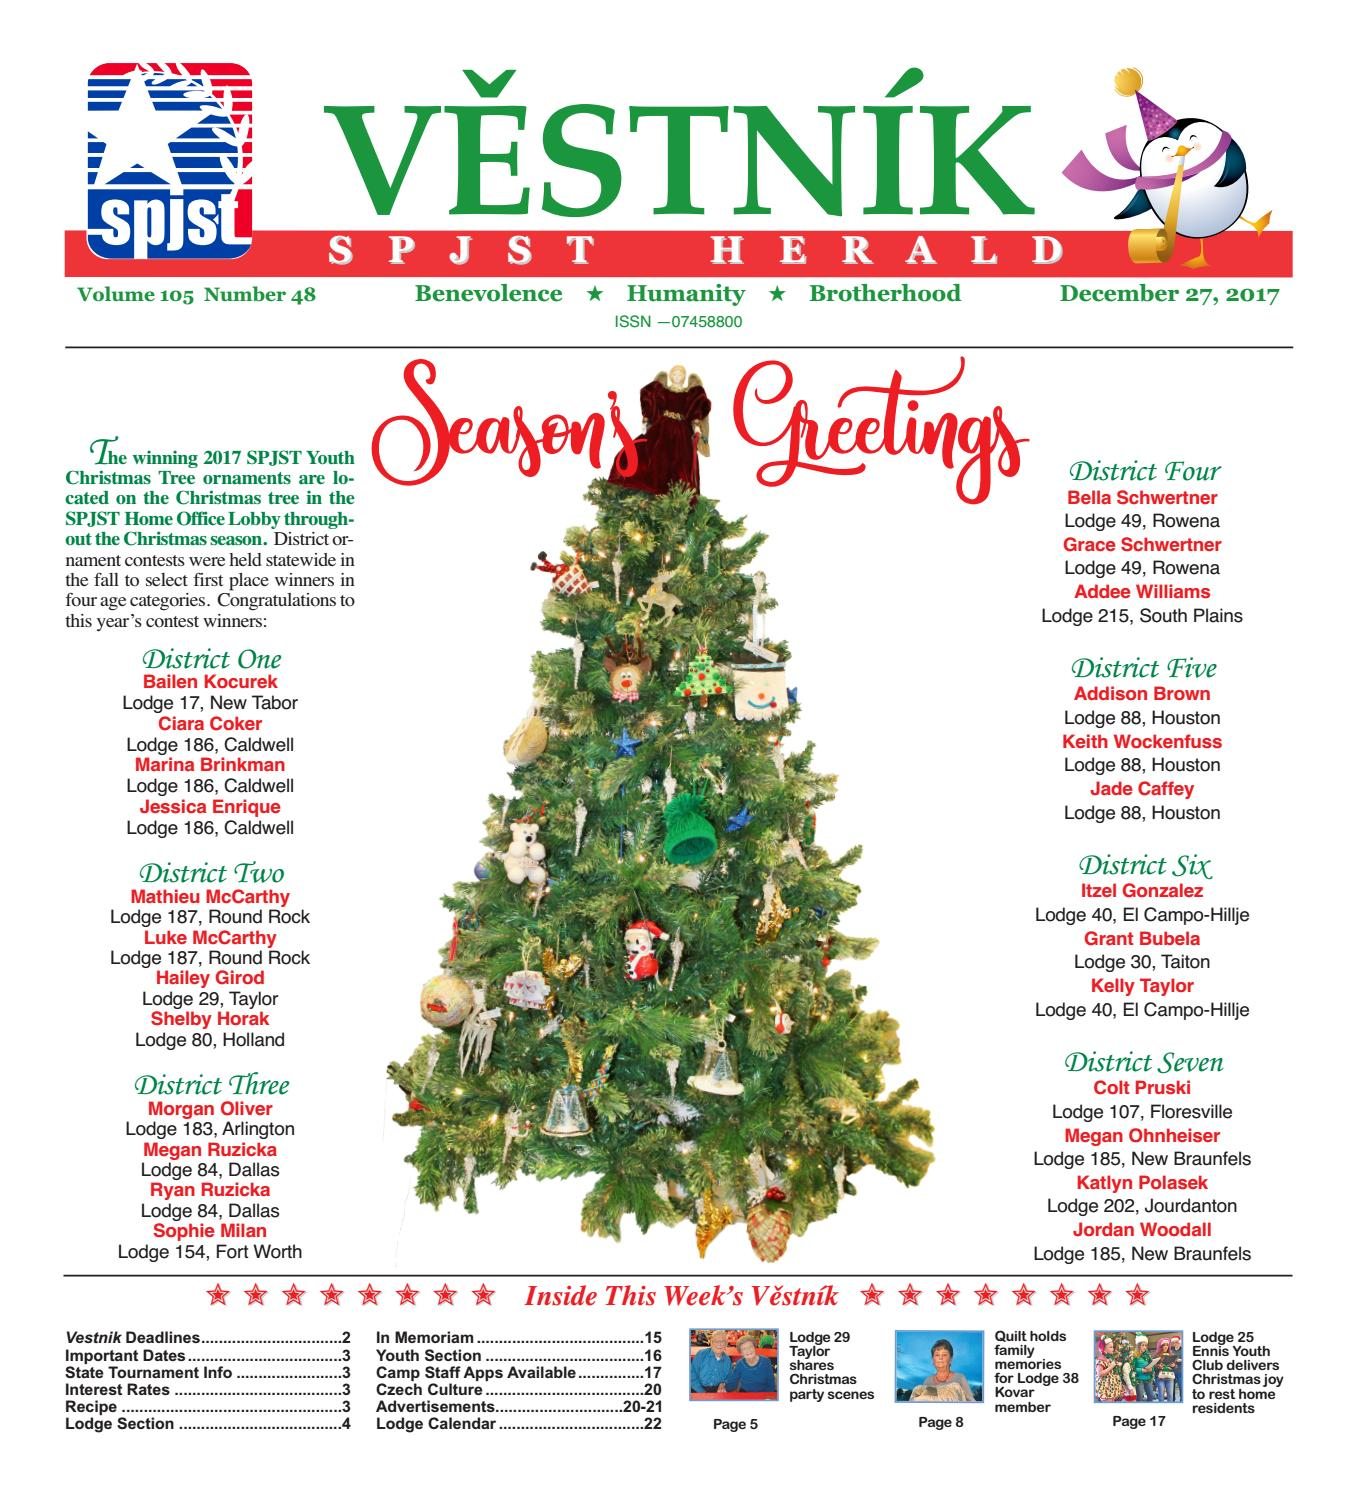 Vfw Post 2872 Entertainment December 2020 Calendar Vestnik 2017.12.27 by SPJST   issuu